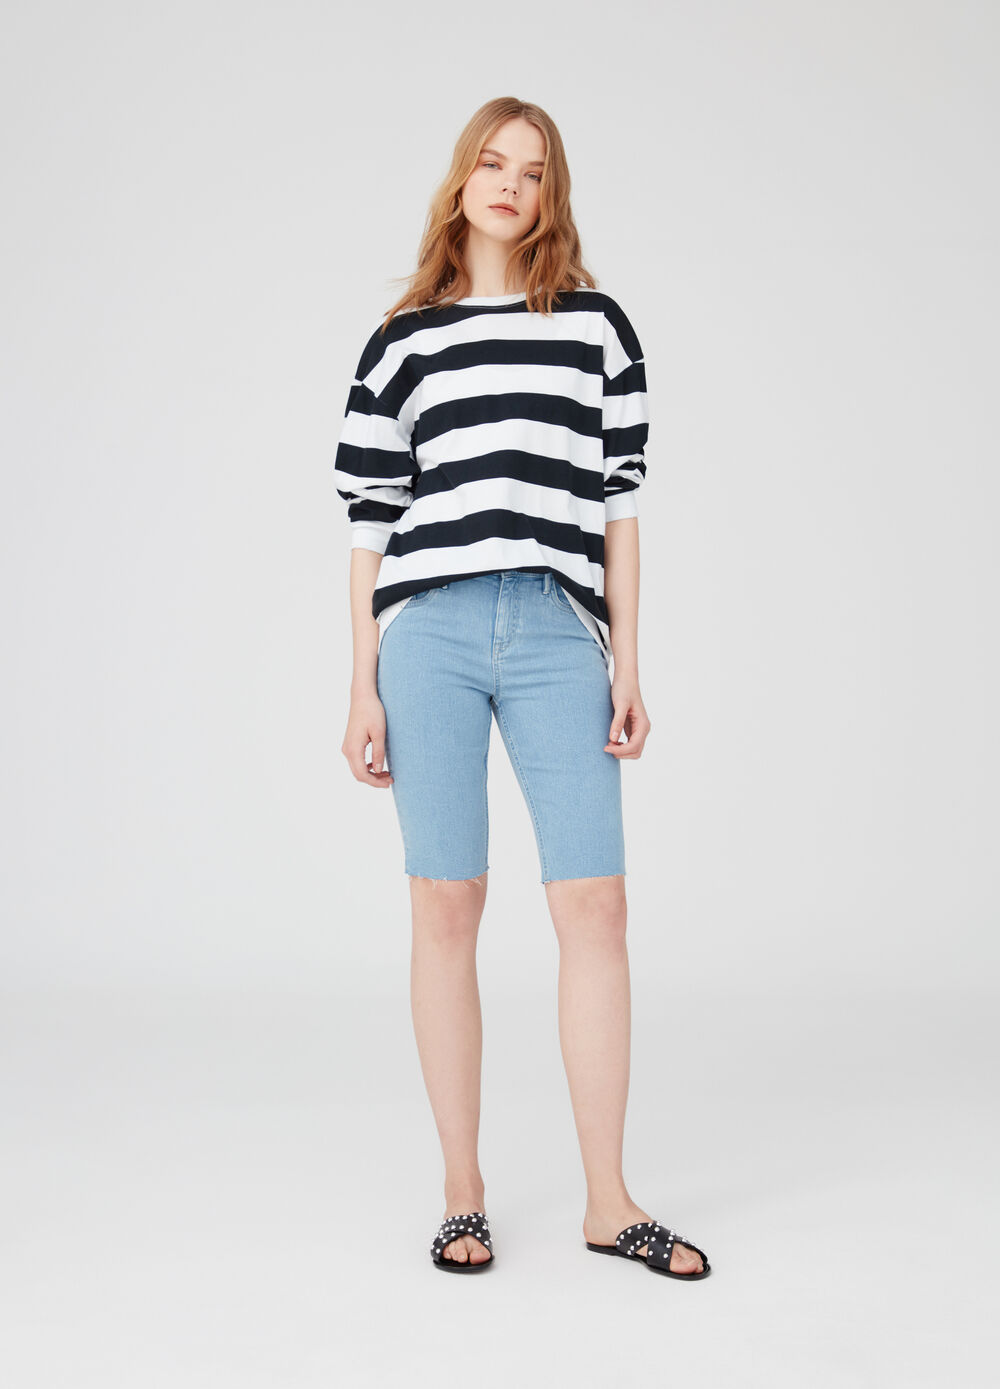 5-pocket stretch denim Bermuda shorts